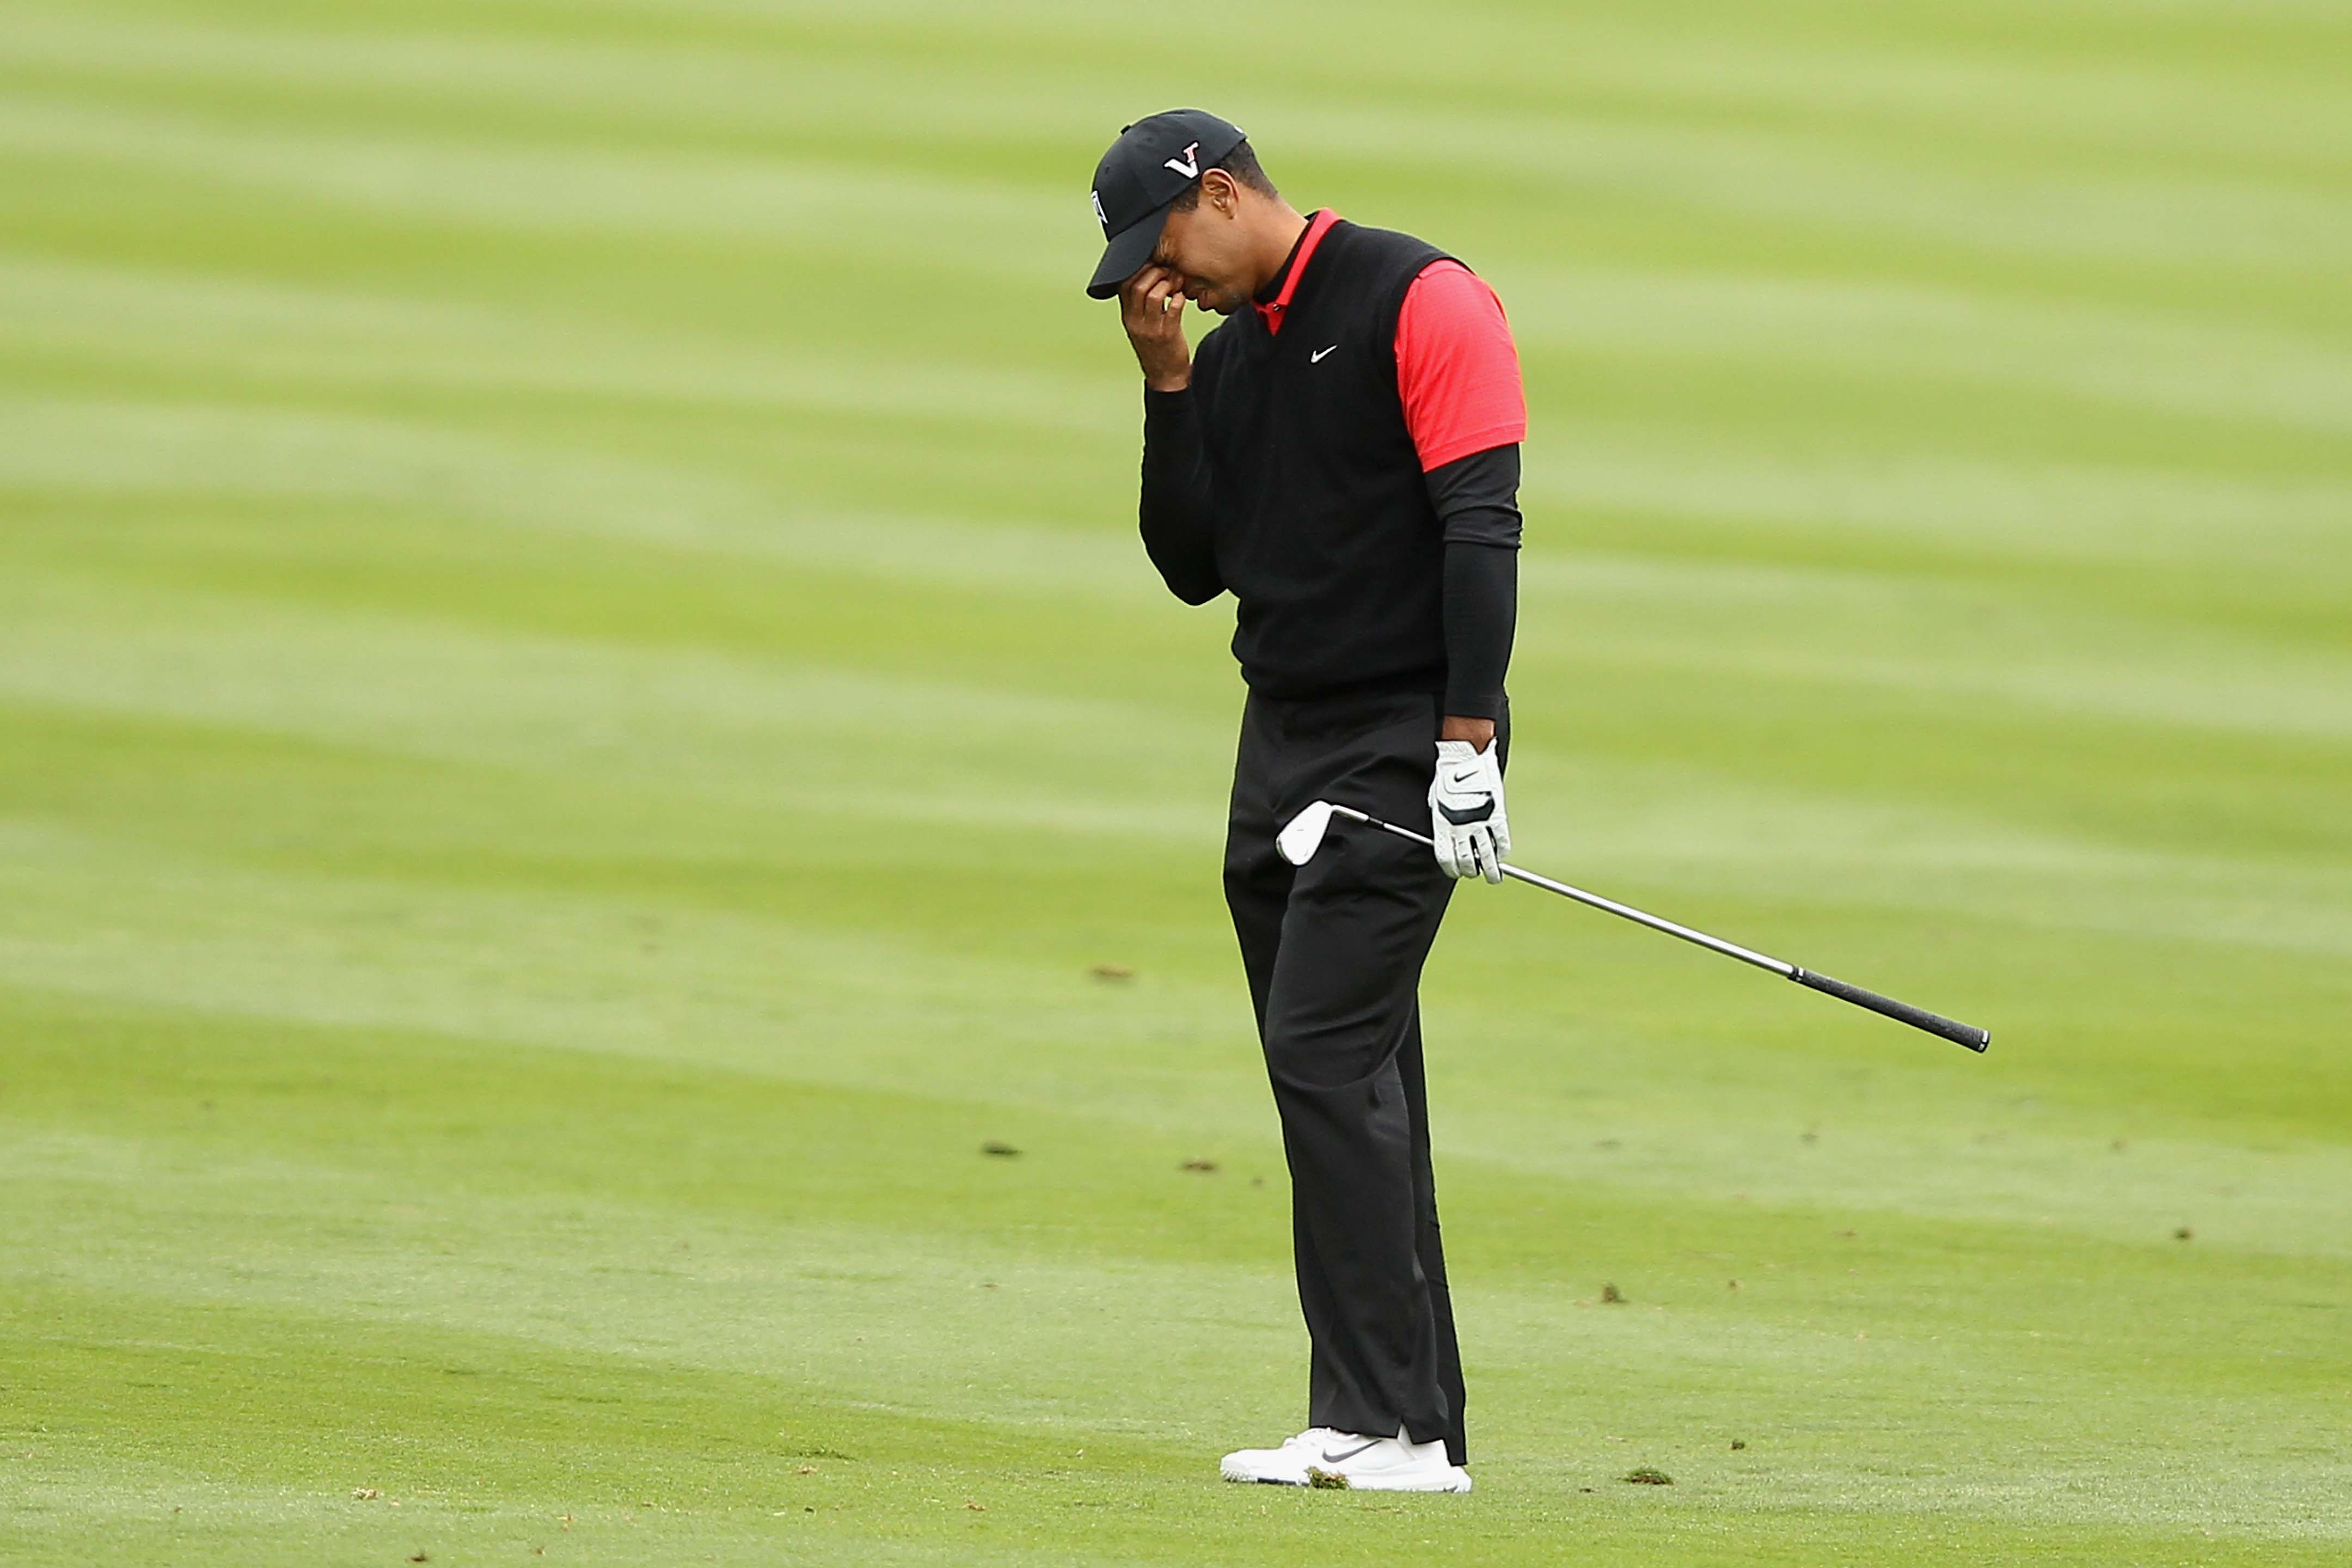 Who does Woods think he is - Jordan Spieth?